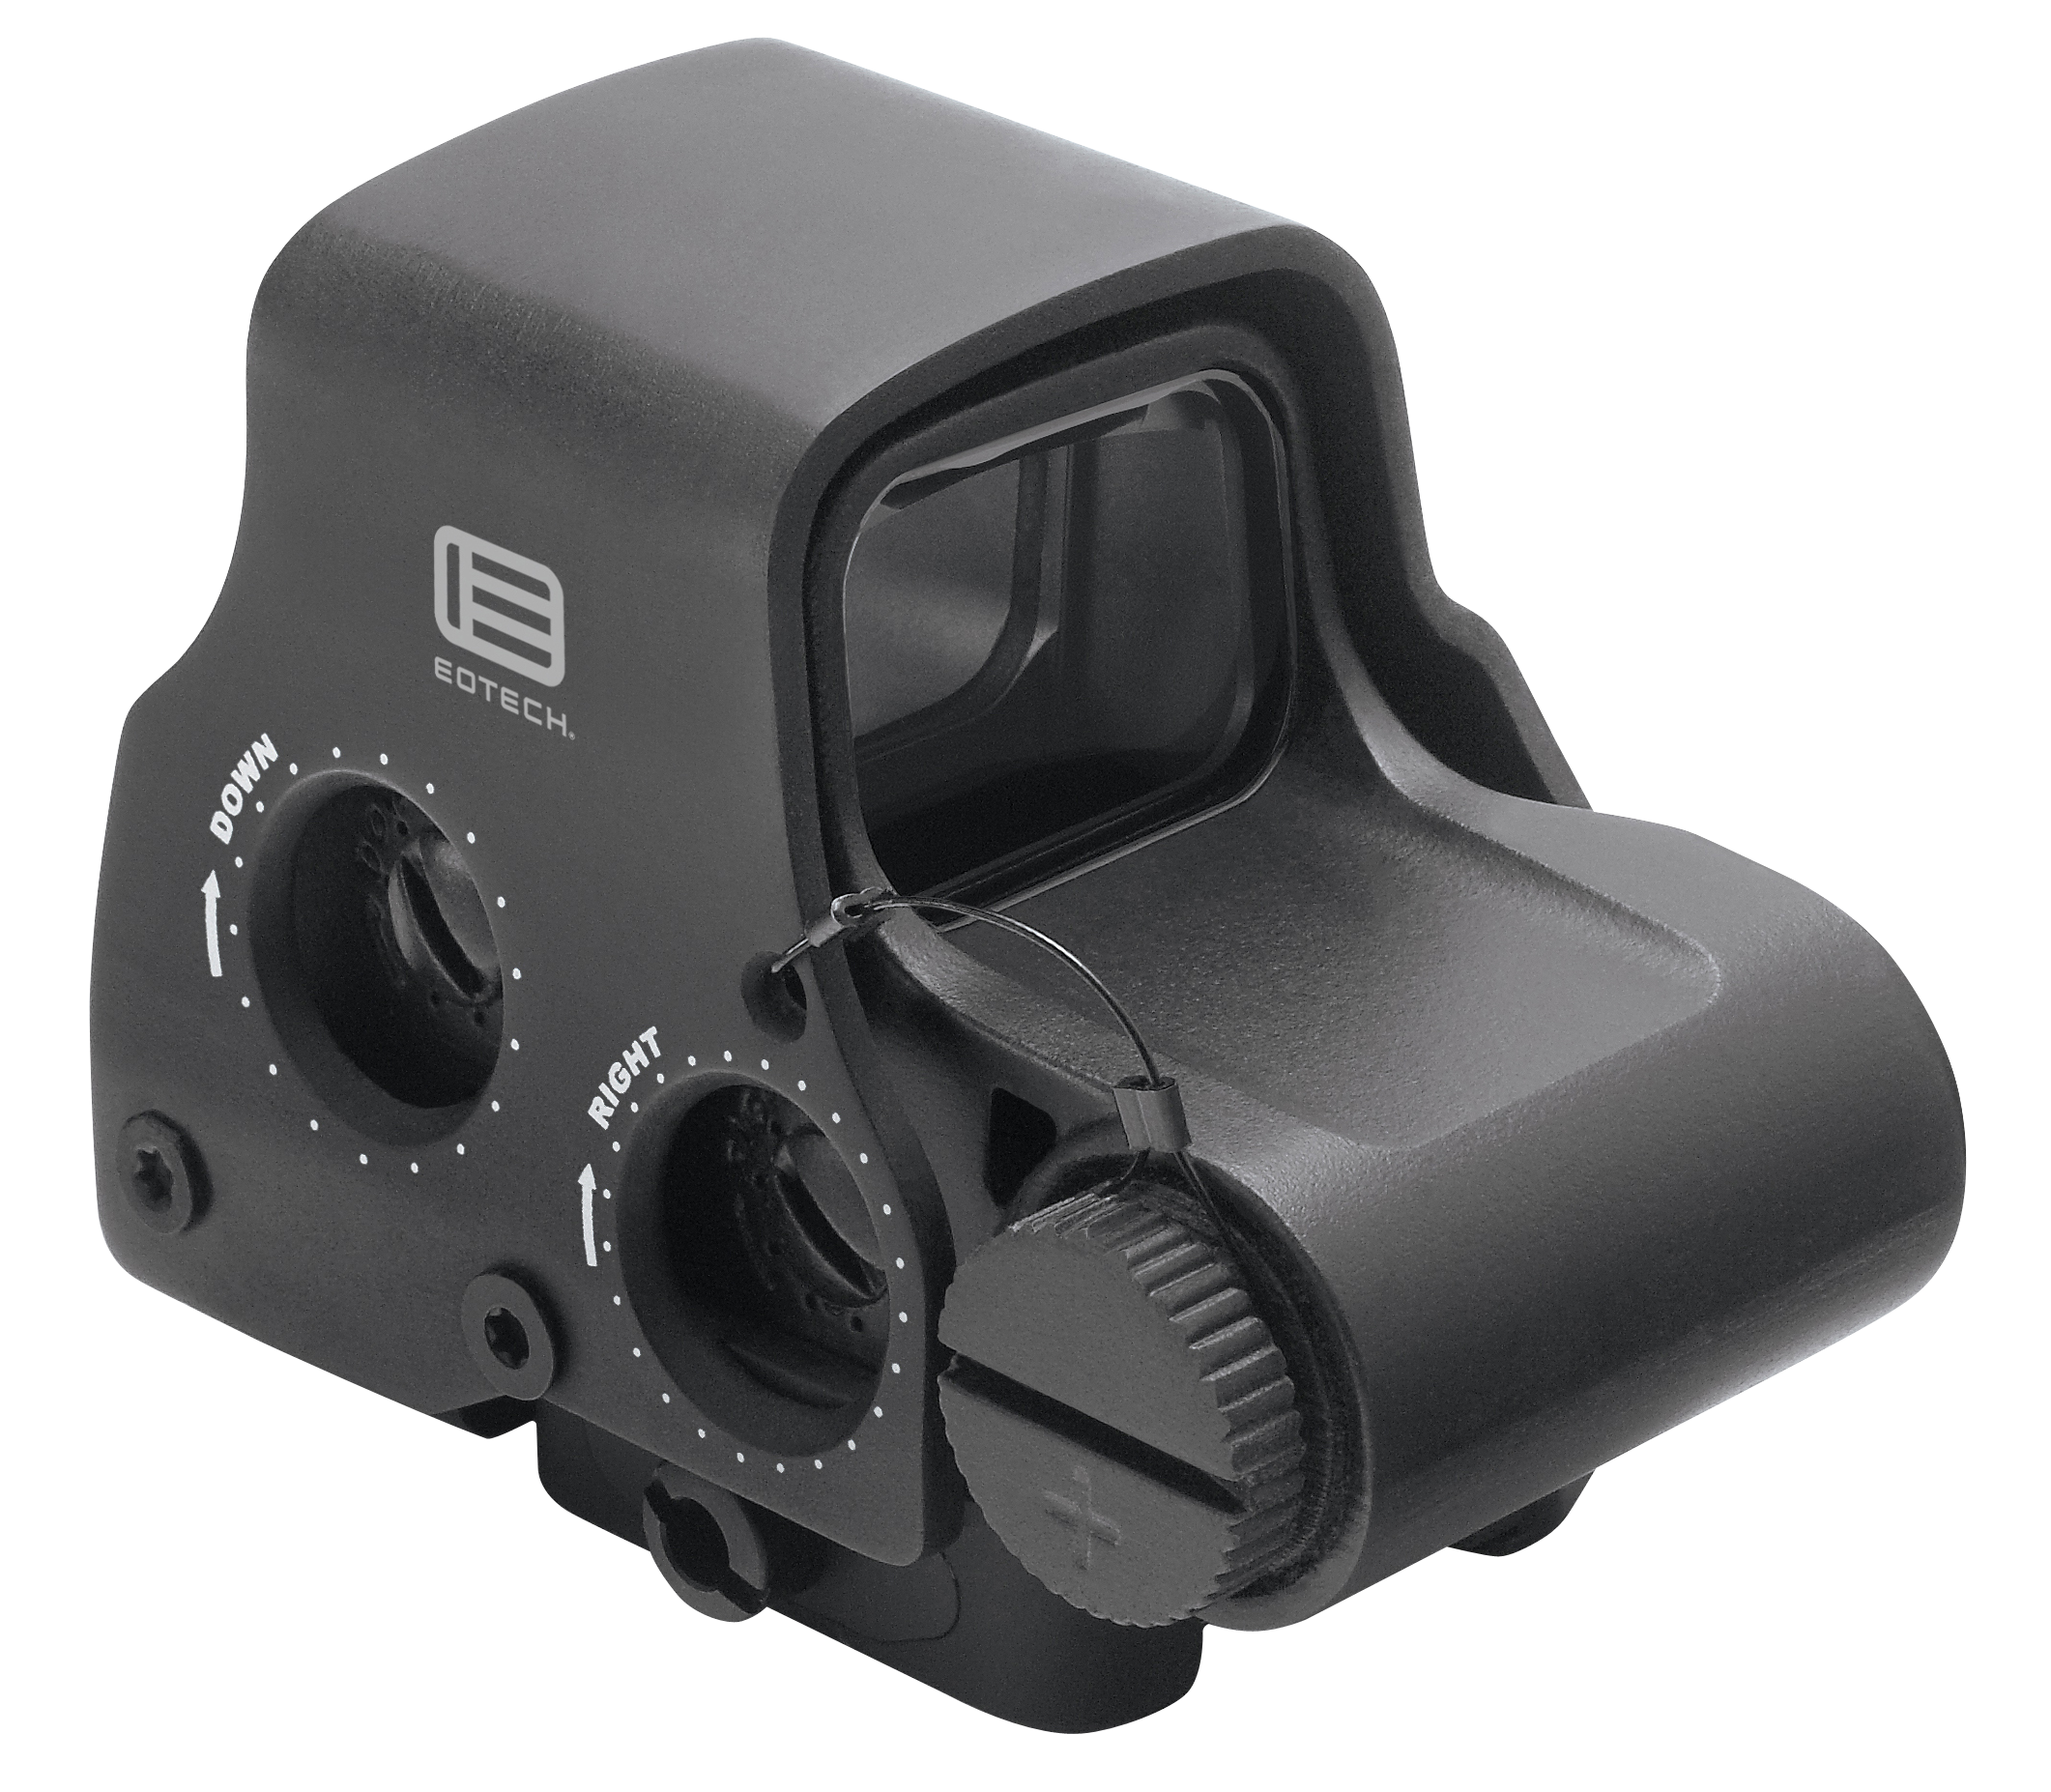 Eotech EXPS32 EXPS3 1x 30x23mm Obj Unlimited Eye Relief 2 Dot 1MOA Black